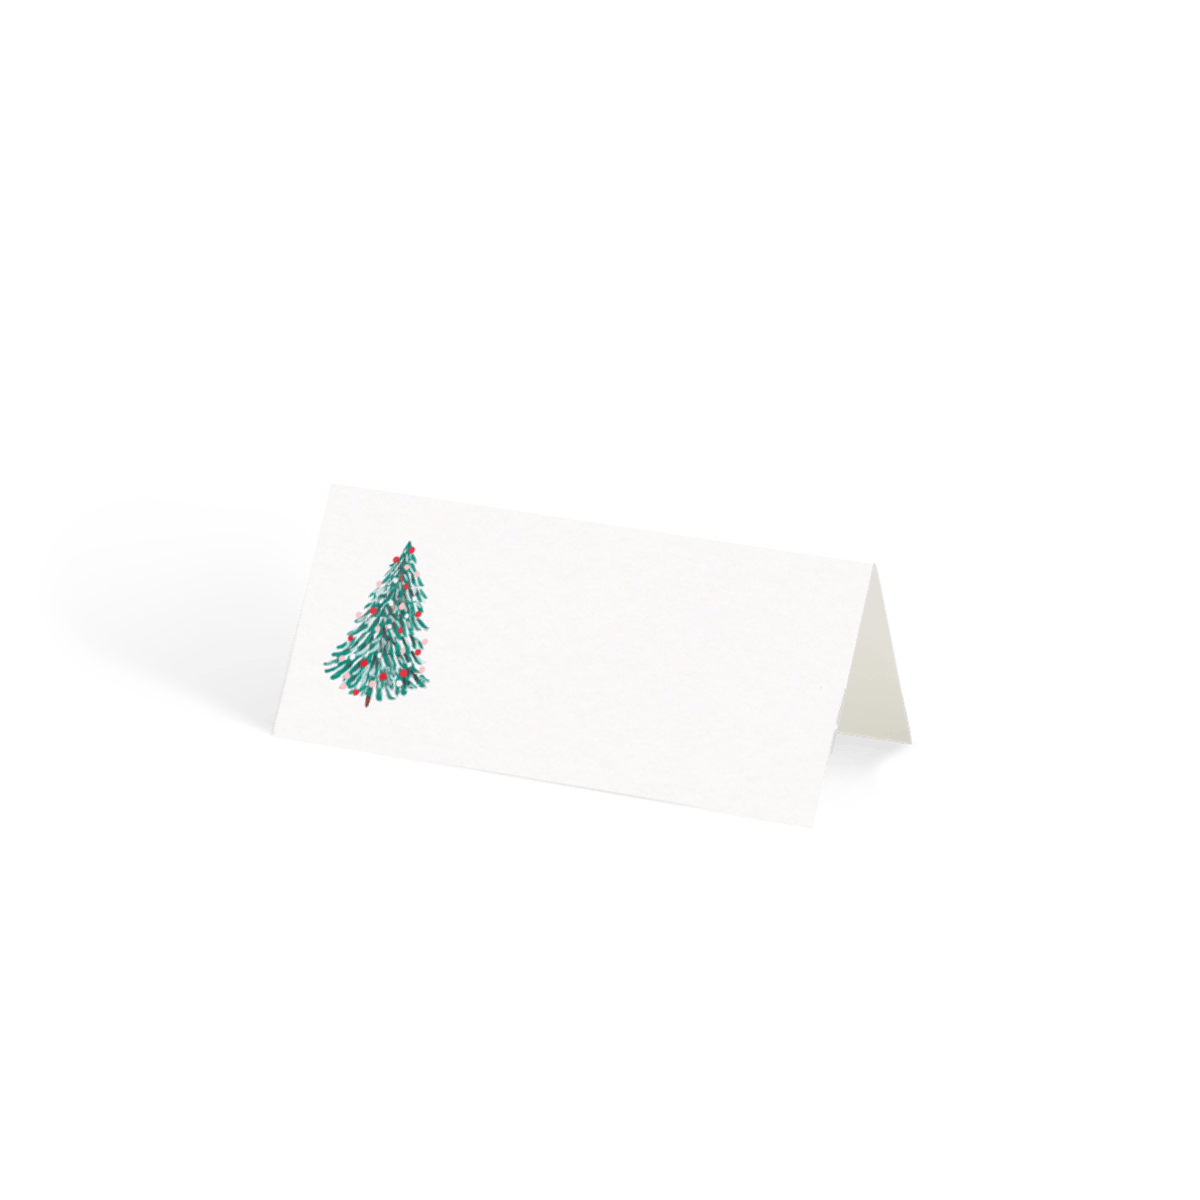 Https%3a%2f%2fwww.papier.com%2fproduct image%2f81843%2f8%2fmerry christmas tree 19719 front 1561996371.png?ixlib=rb 1.1